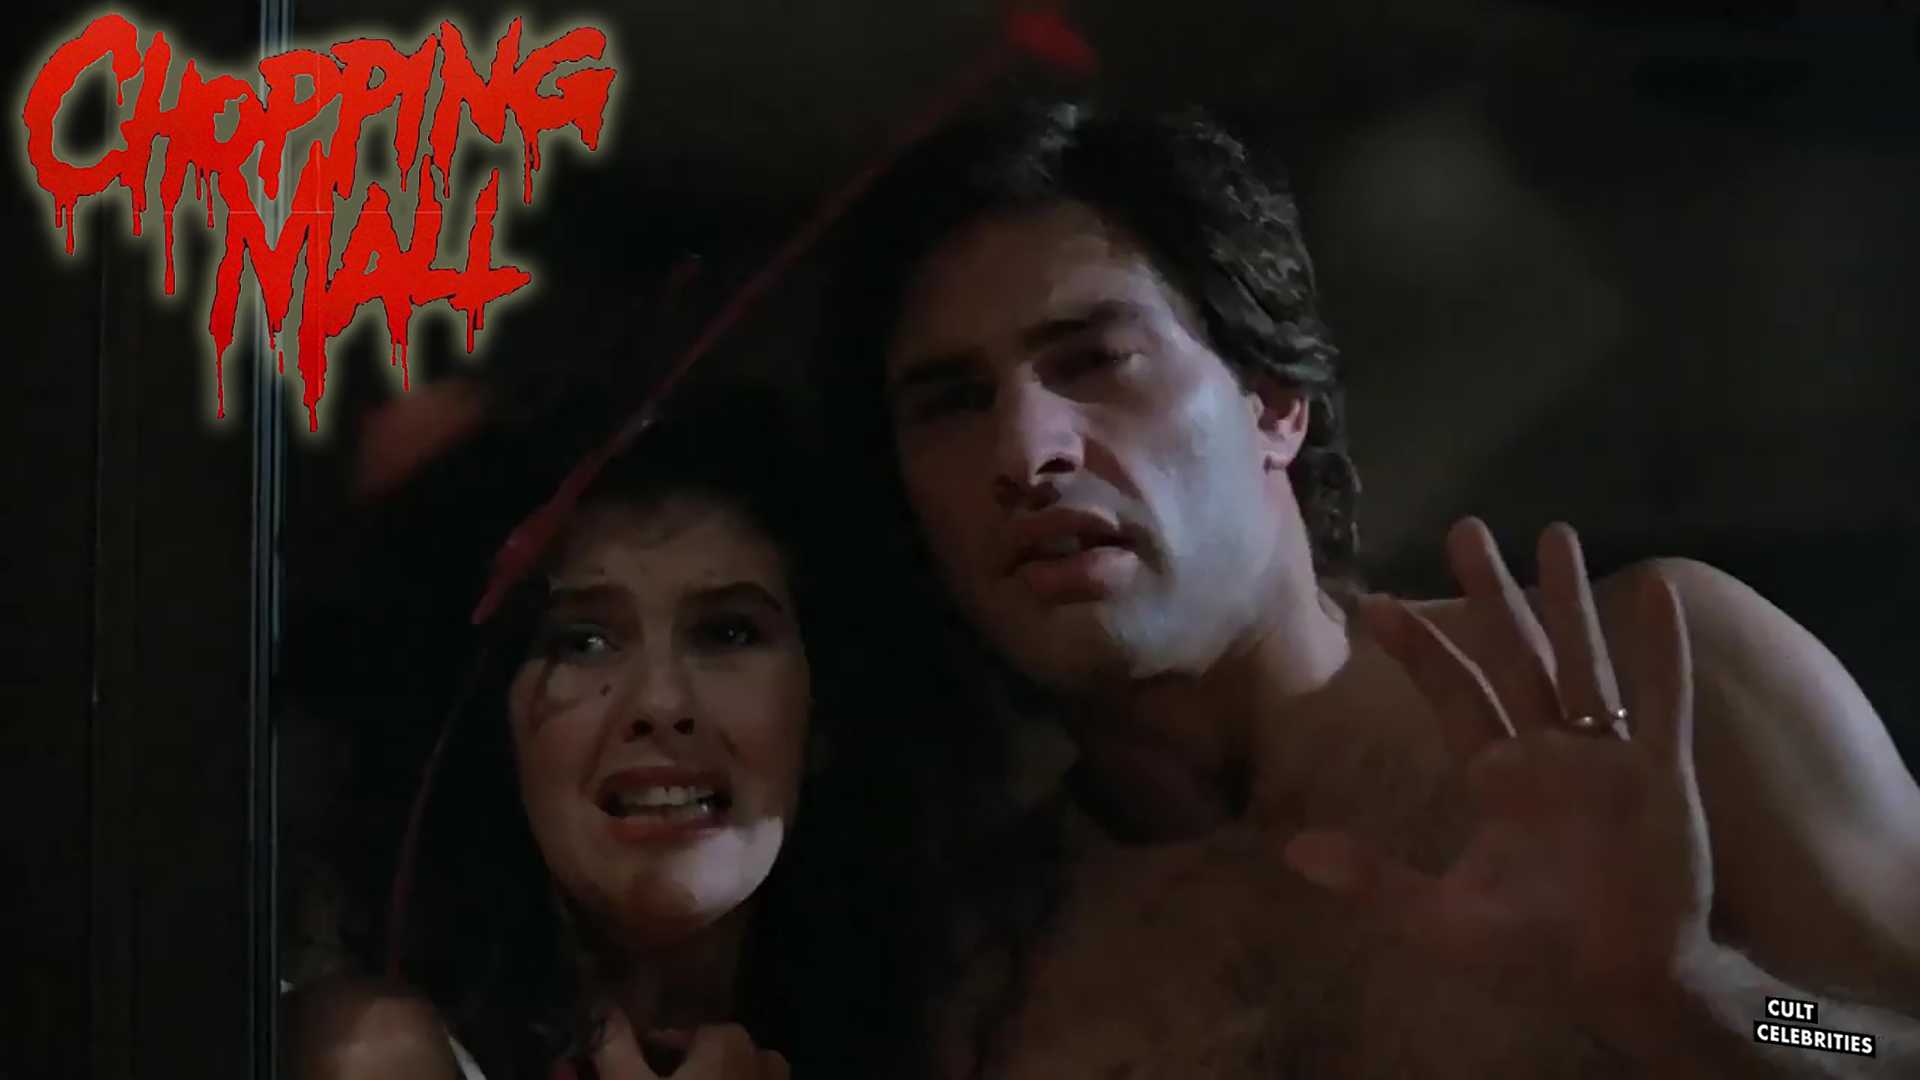 Karrie Emerson and Russell Todd in Chopping Mall (1986)